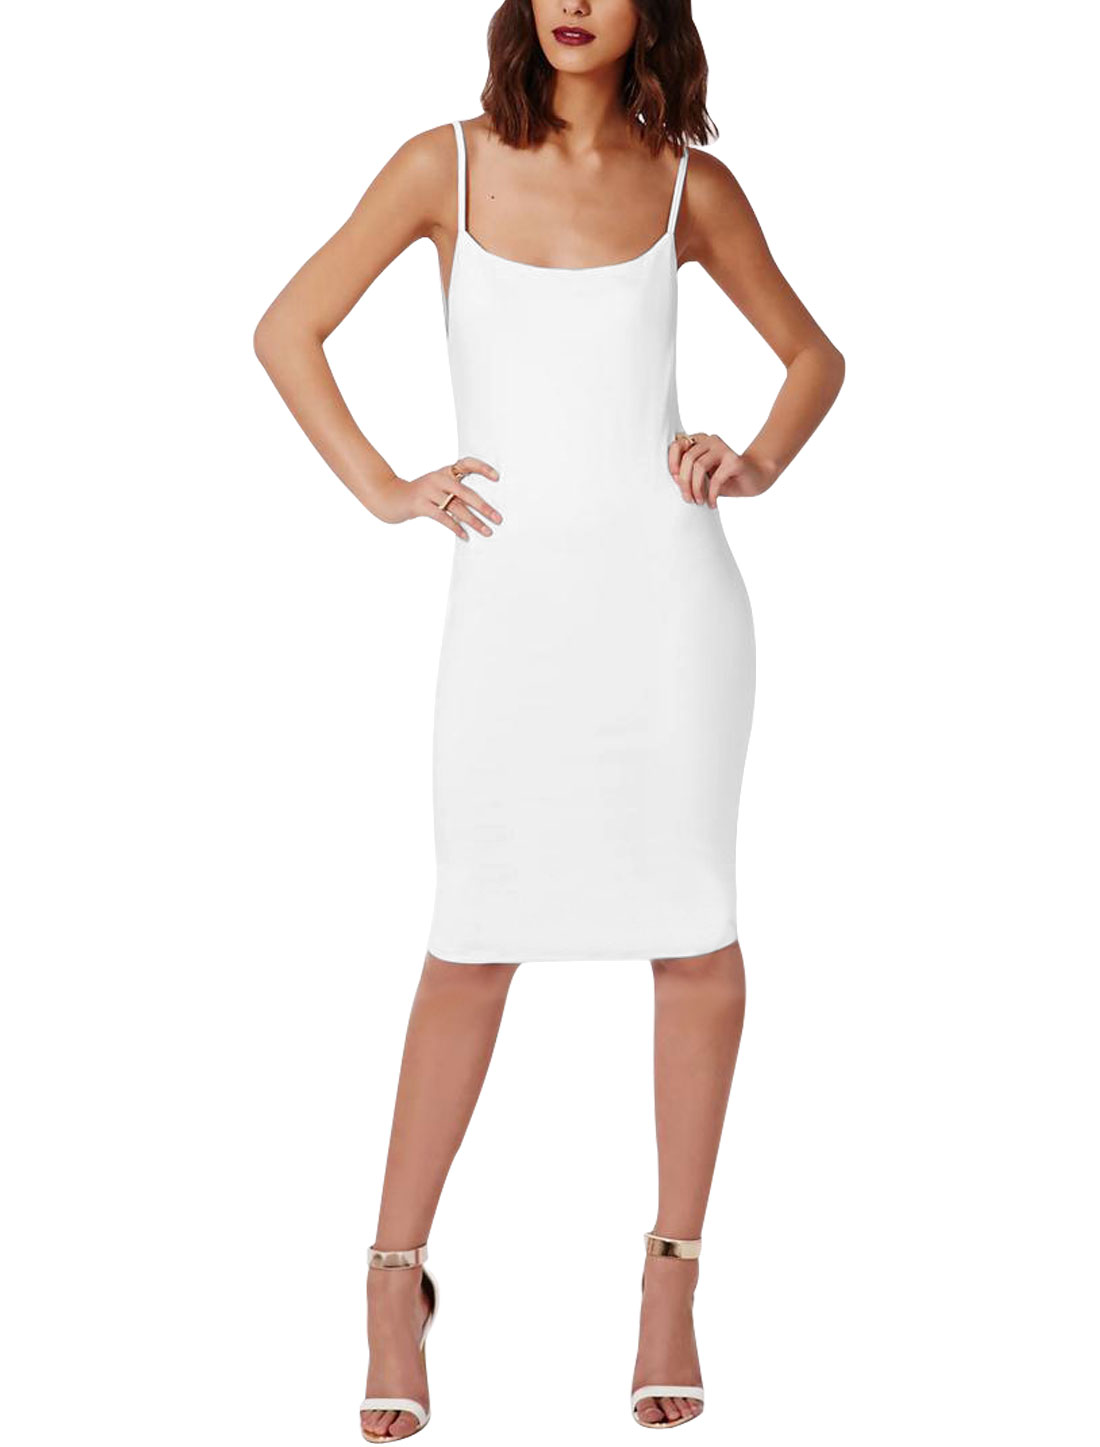 Women Scoop Neck Backless Full Lined Sheath Dress White M